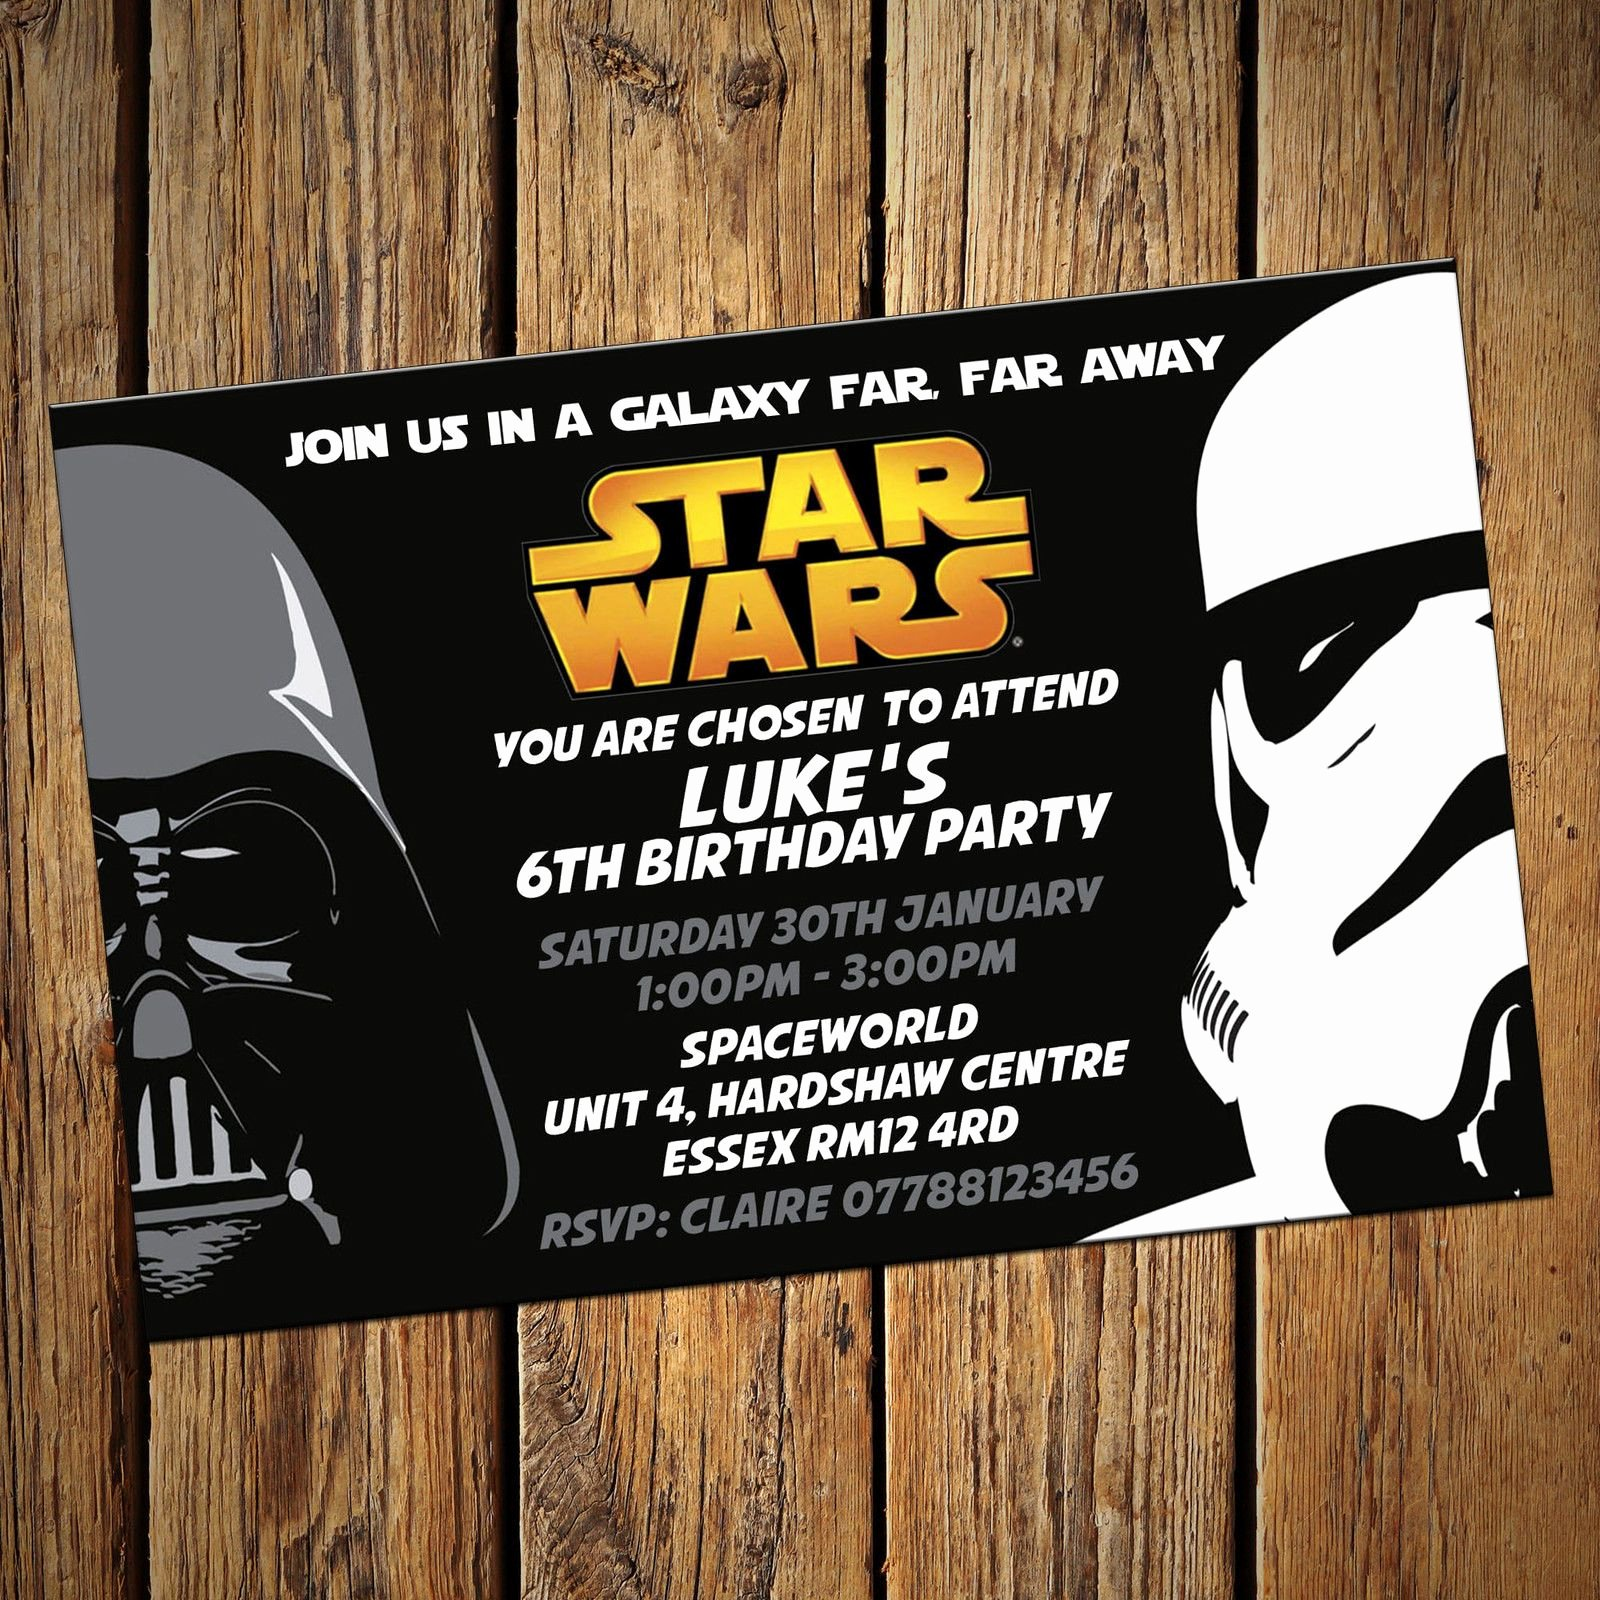 Star Wars Party Invitations New Star Wars Personalised Party Invitations Birthday Invites Free Envelopes Ics